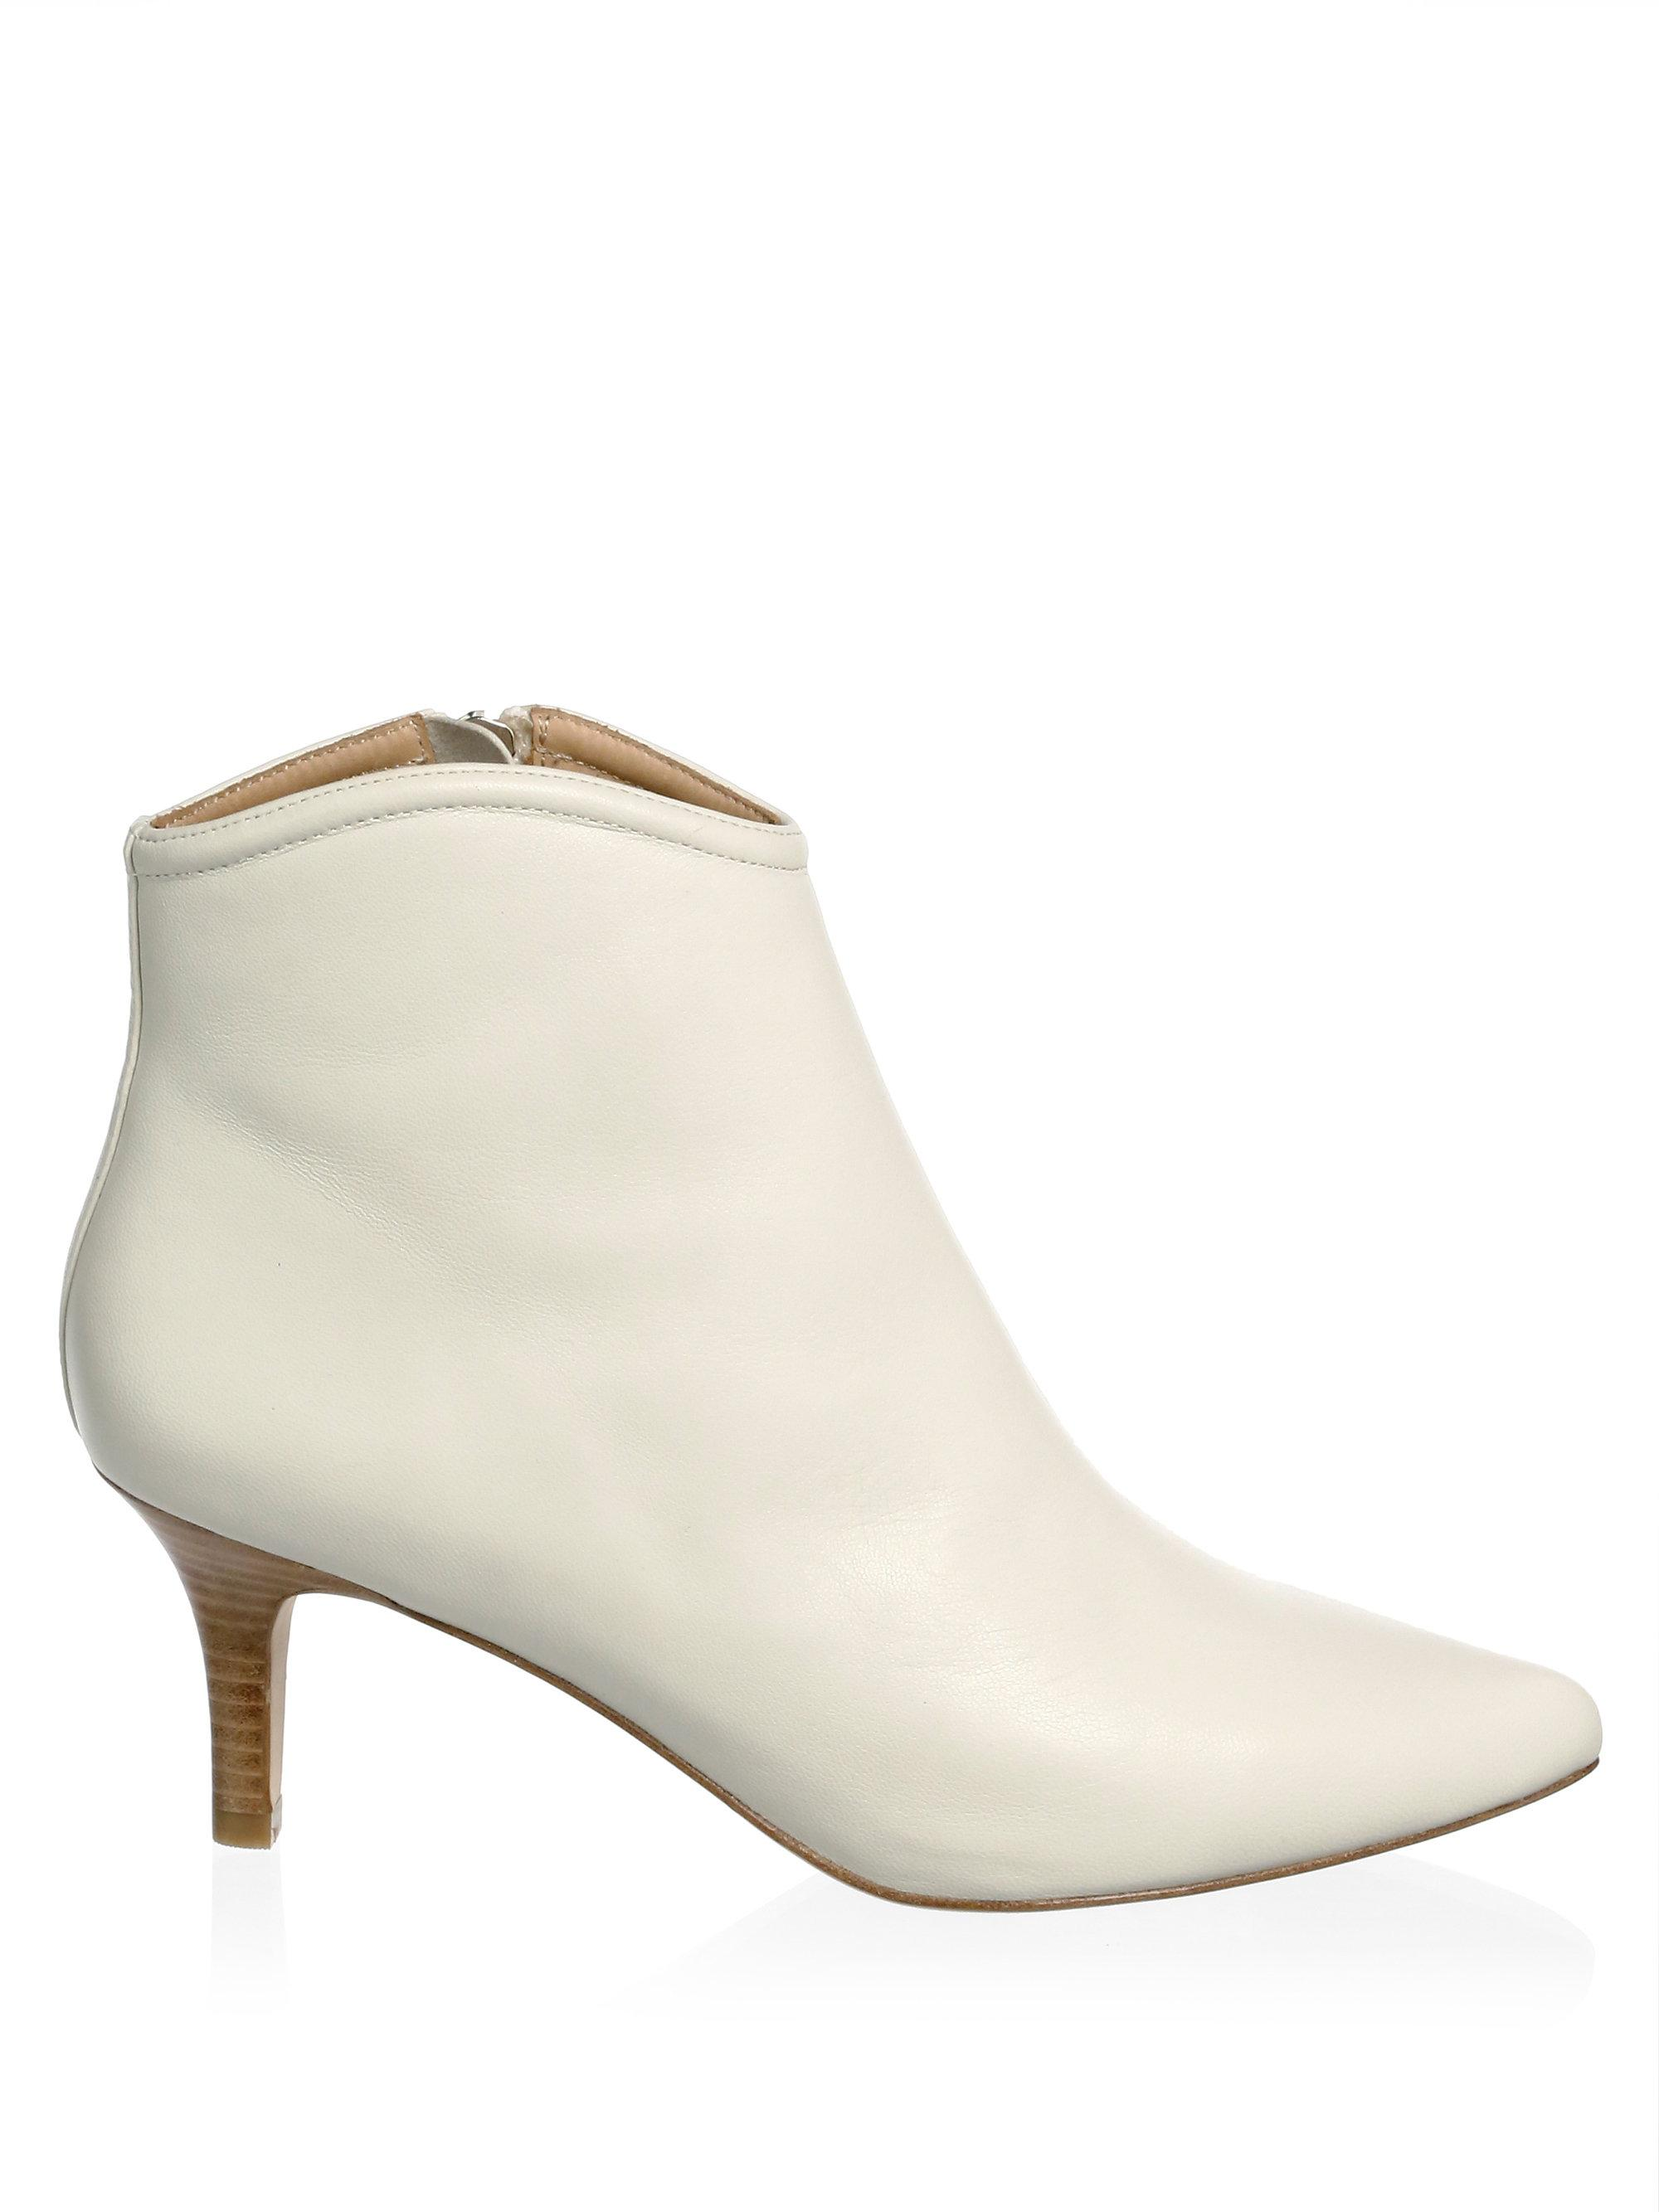 Joie Ralean Leather Booties